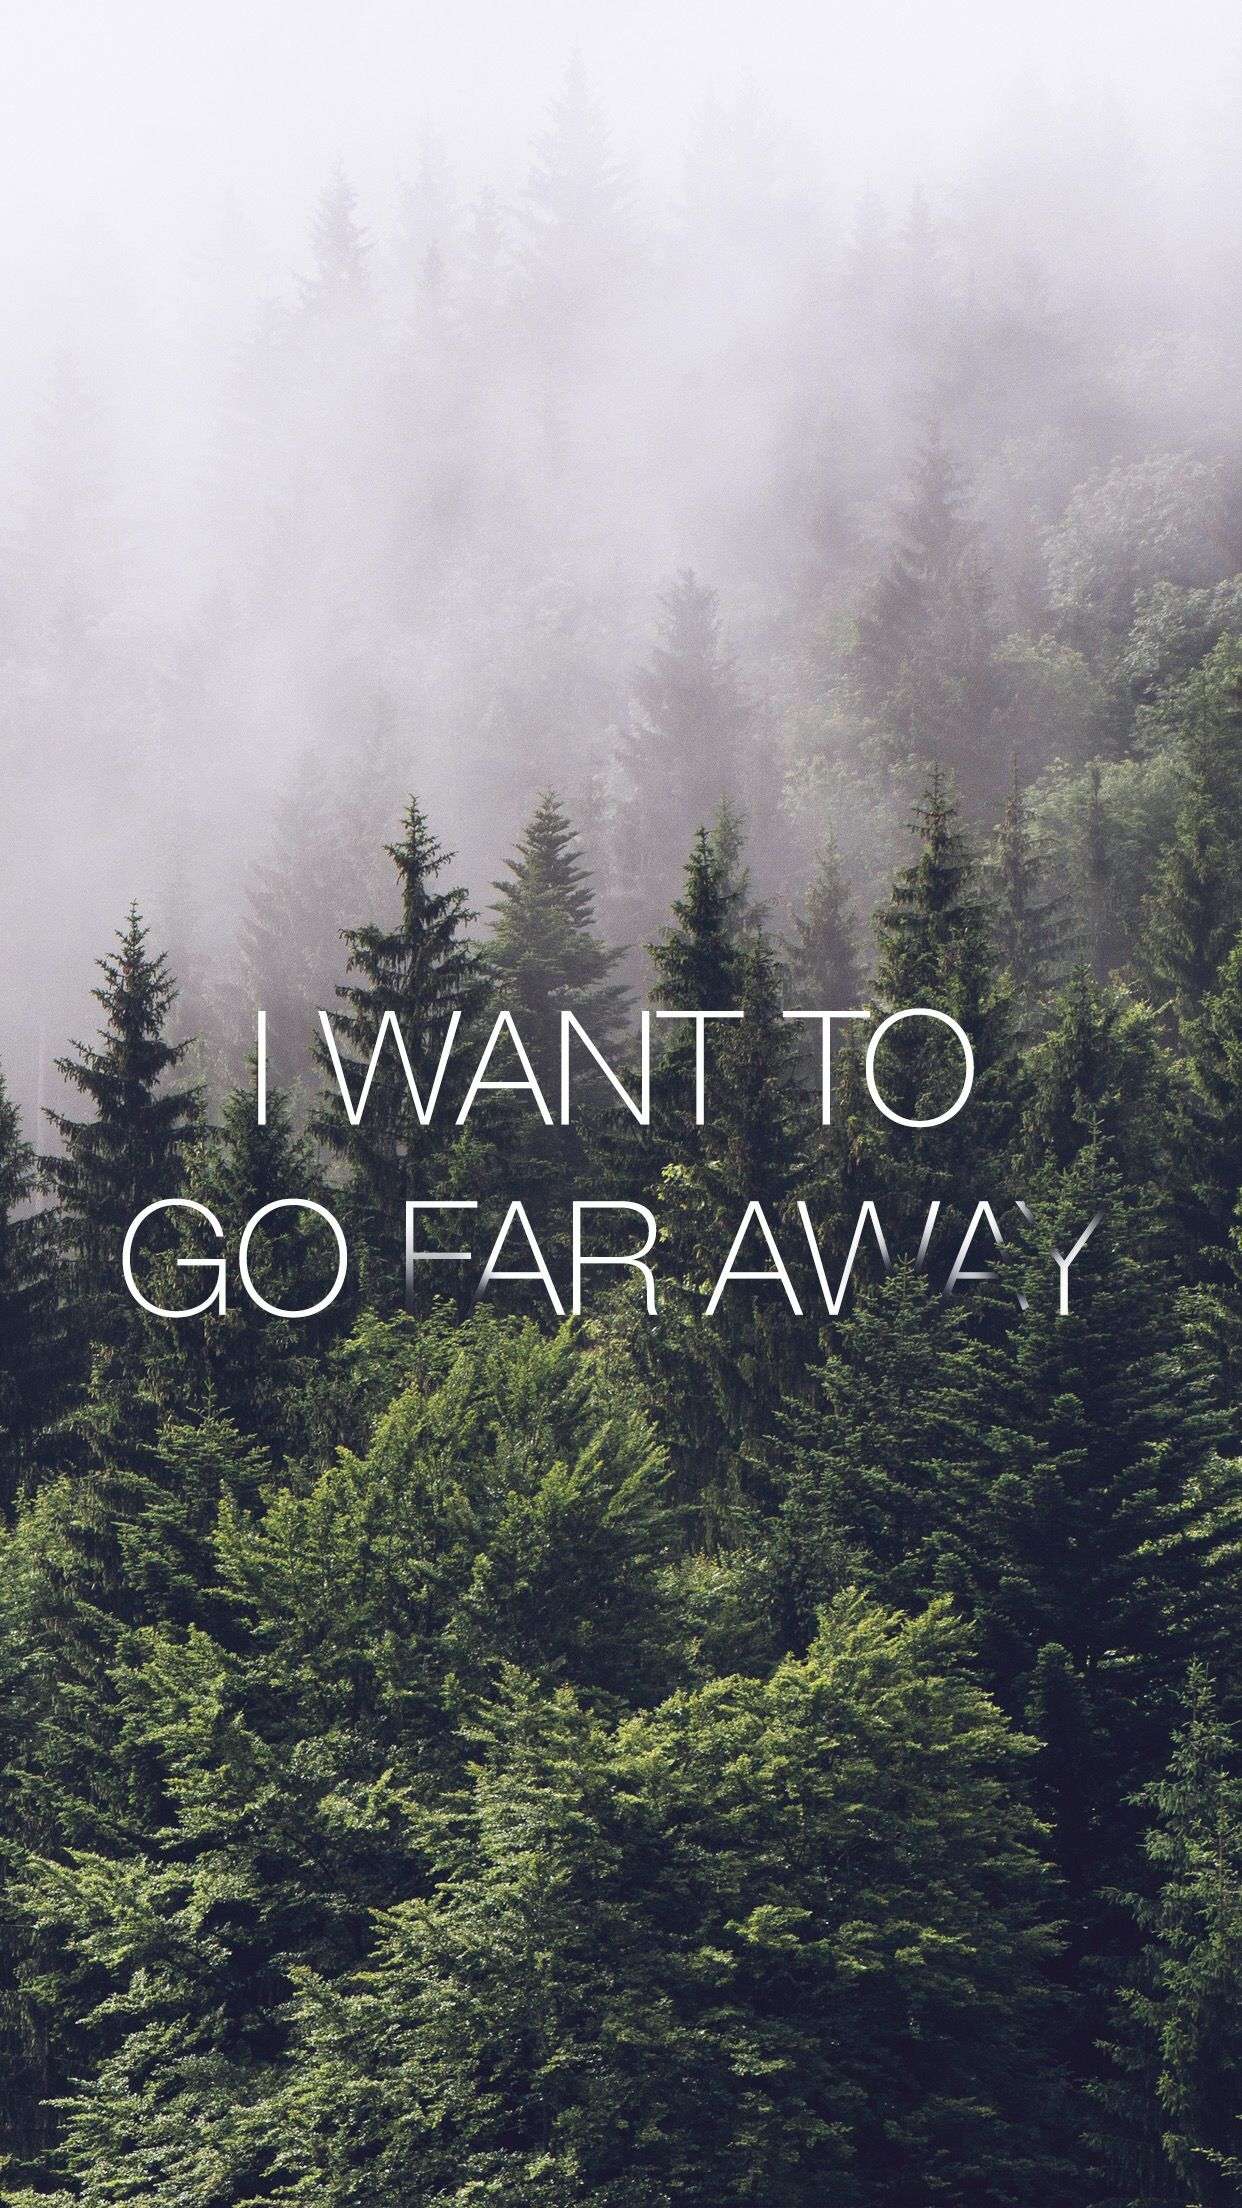 Iphone wallpaper tumblr nature - Go Far Away Yes Please Somebody Just Cram Me In A Box And Ship Me Off